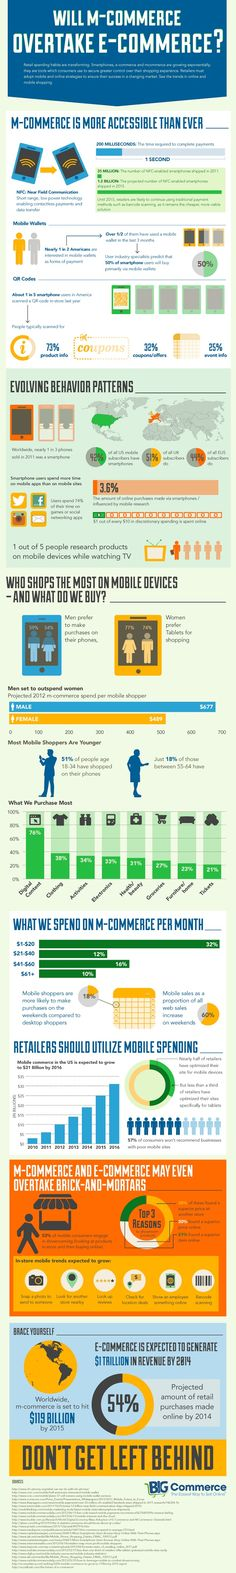 Will Mobile Commerce Overtake E-Commerce?